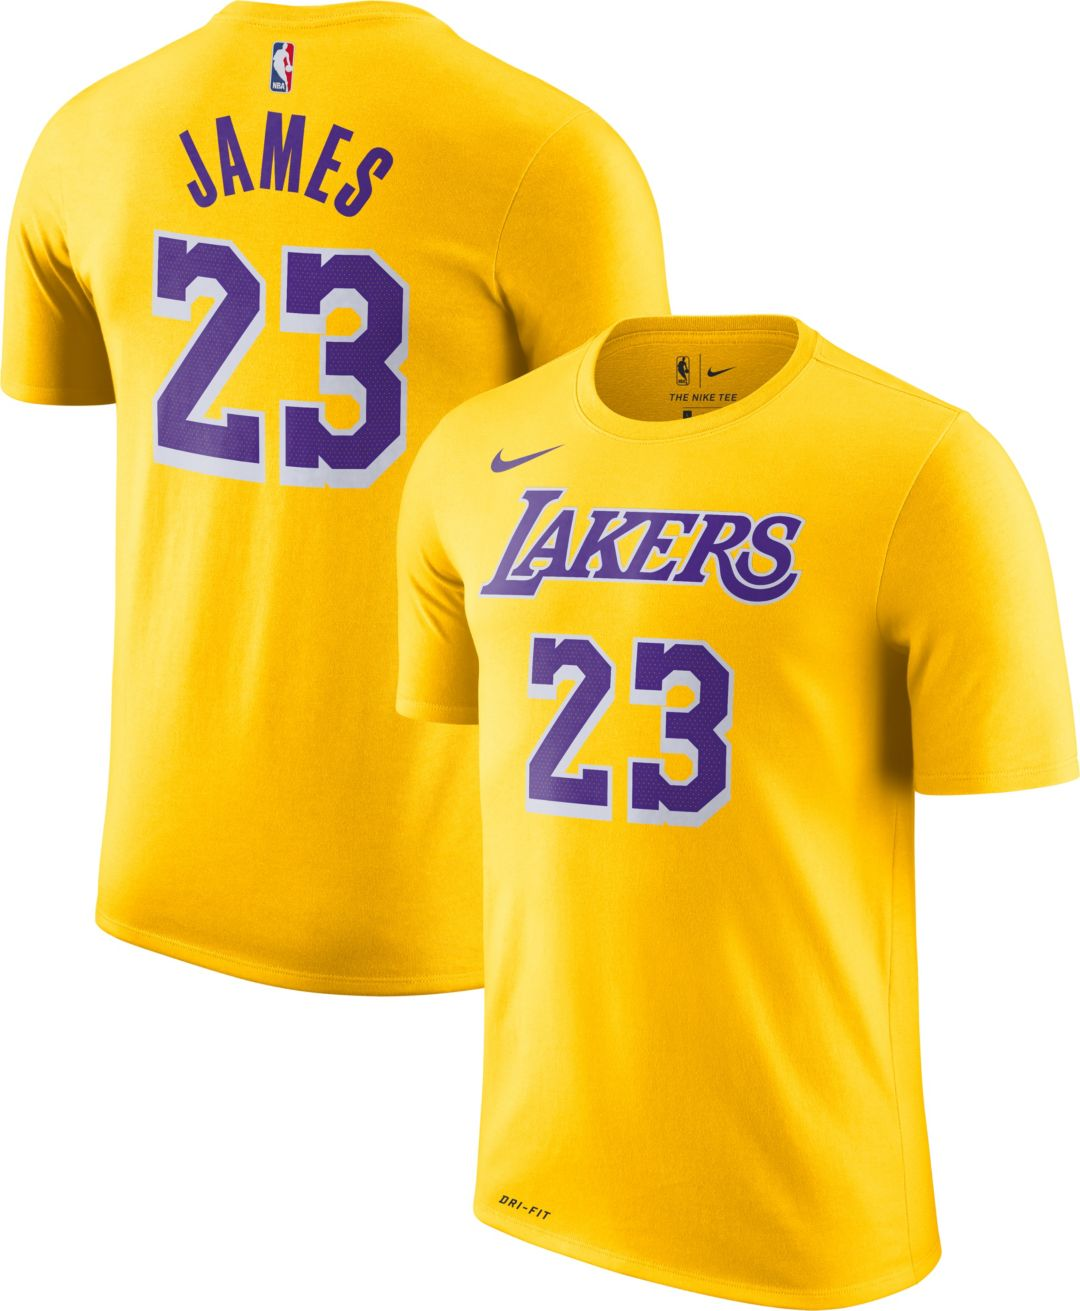 8a5e38f8 Nike Youth Los Angeles Lakers LeBron James Dri-FIT Gold T-Shirt.  noImageFound. Previous